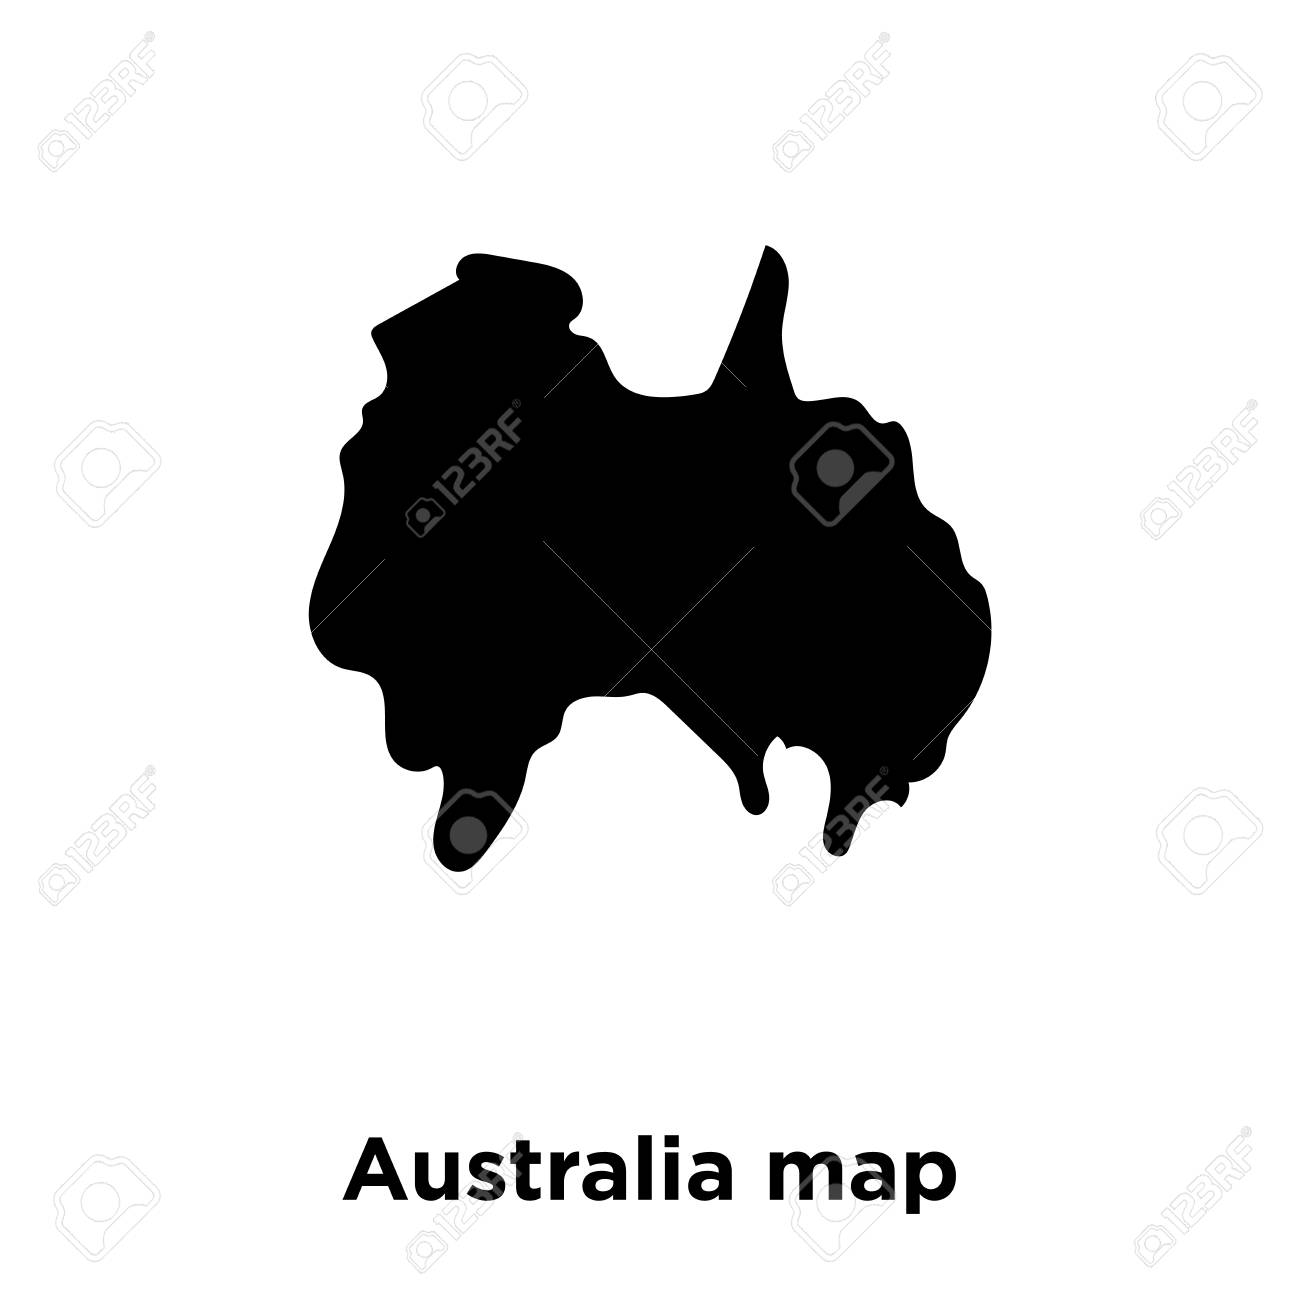 Australia Map Transparent.Australia Map Icon Vector Isolated On White Background Logo